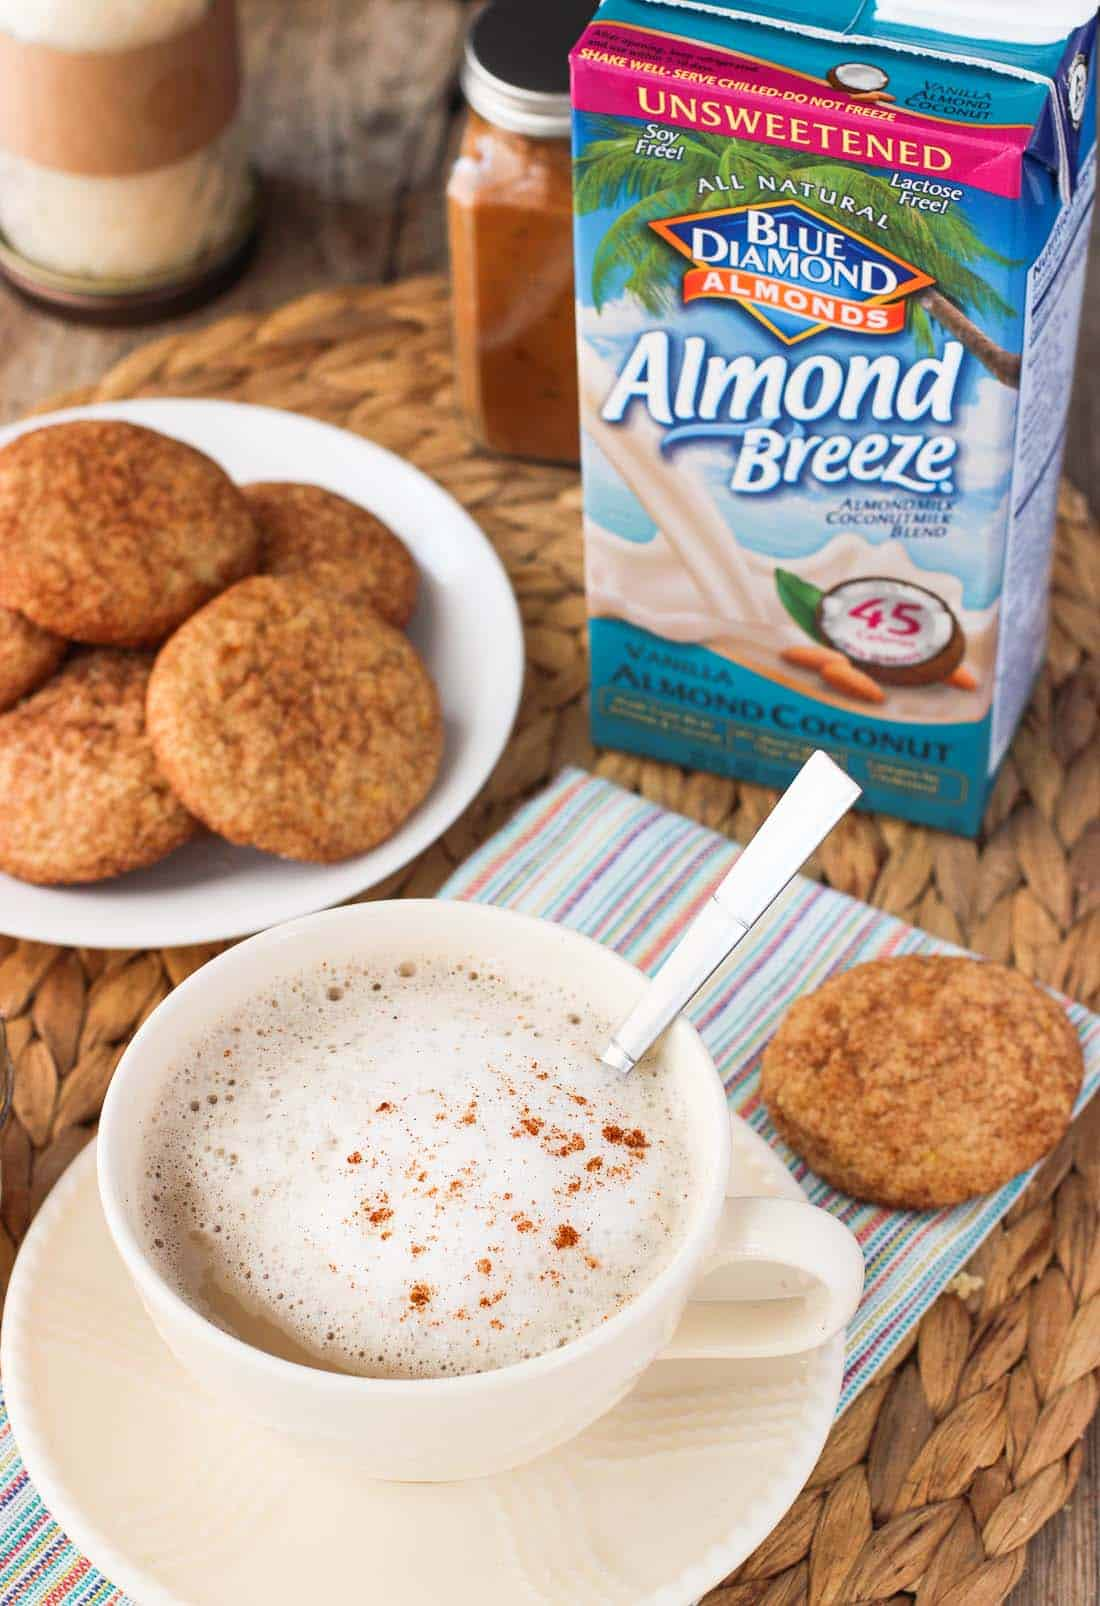 A latte in a mug with foamed milk and cinnamon served next to a plate of cookies with the Almondbreeze container in the background